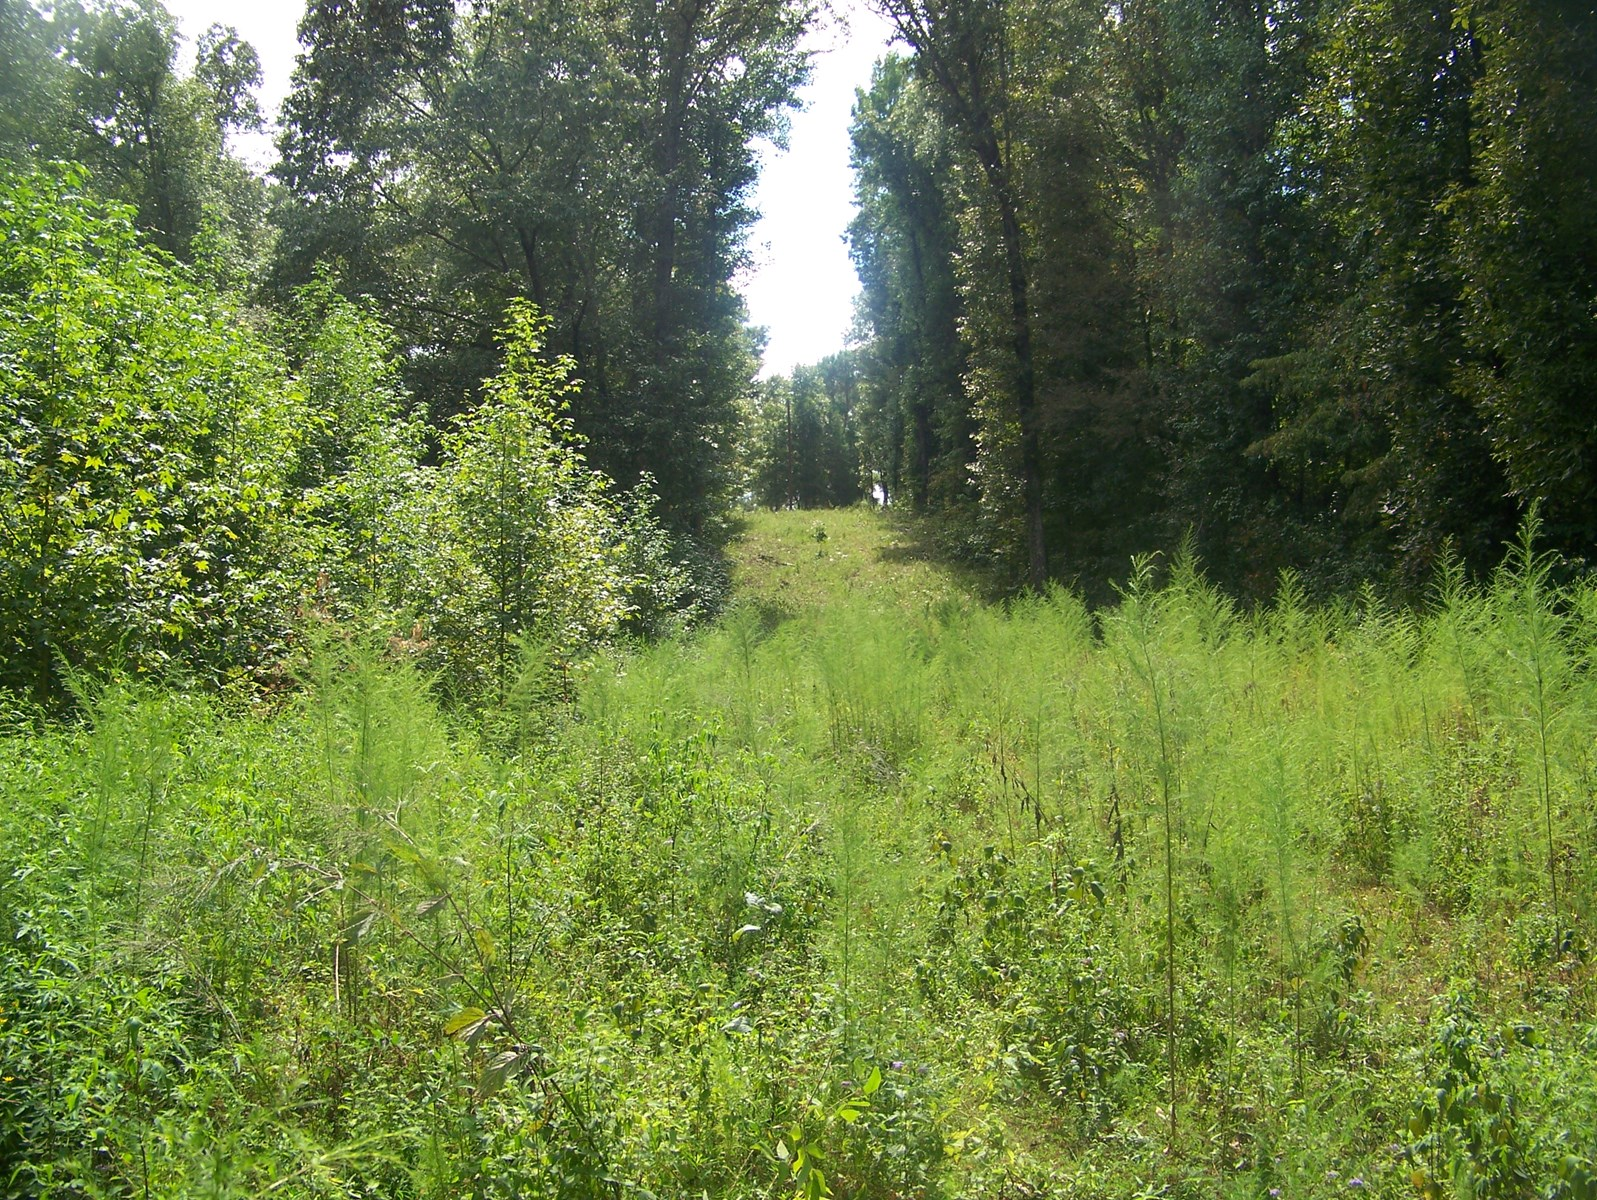 HUNTING LAND FOR SALE IN TN, NO RESTRICTIONS, NEAR WHITE OAK